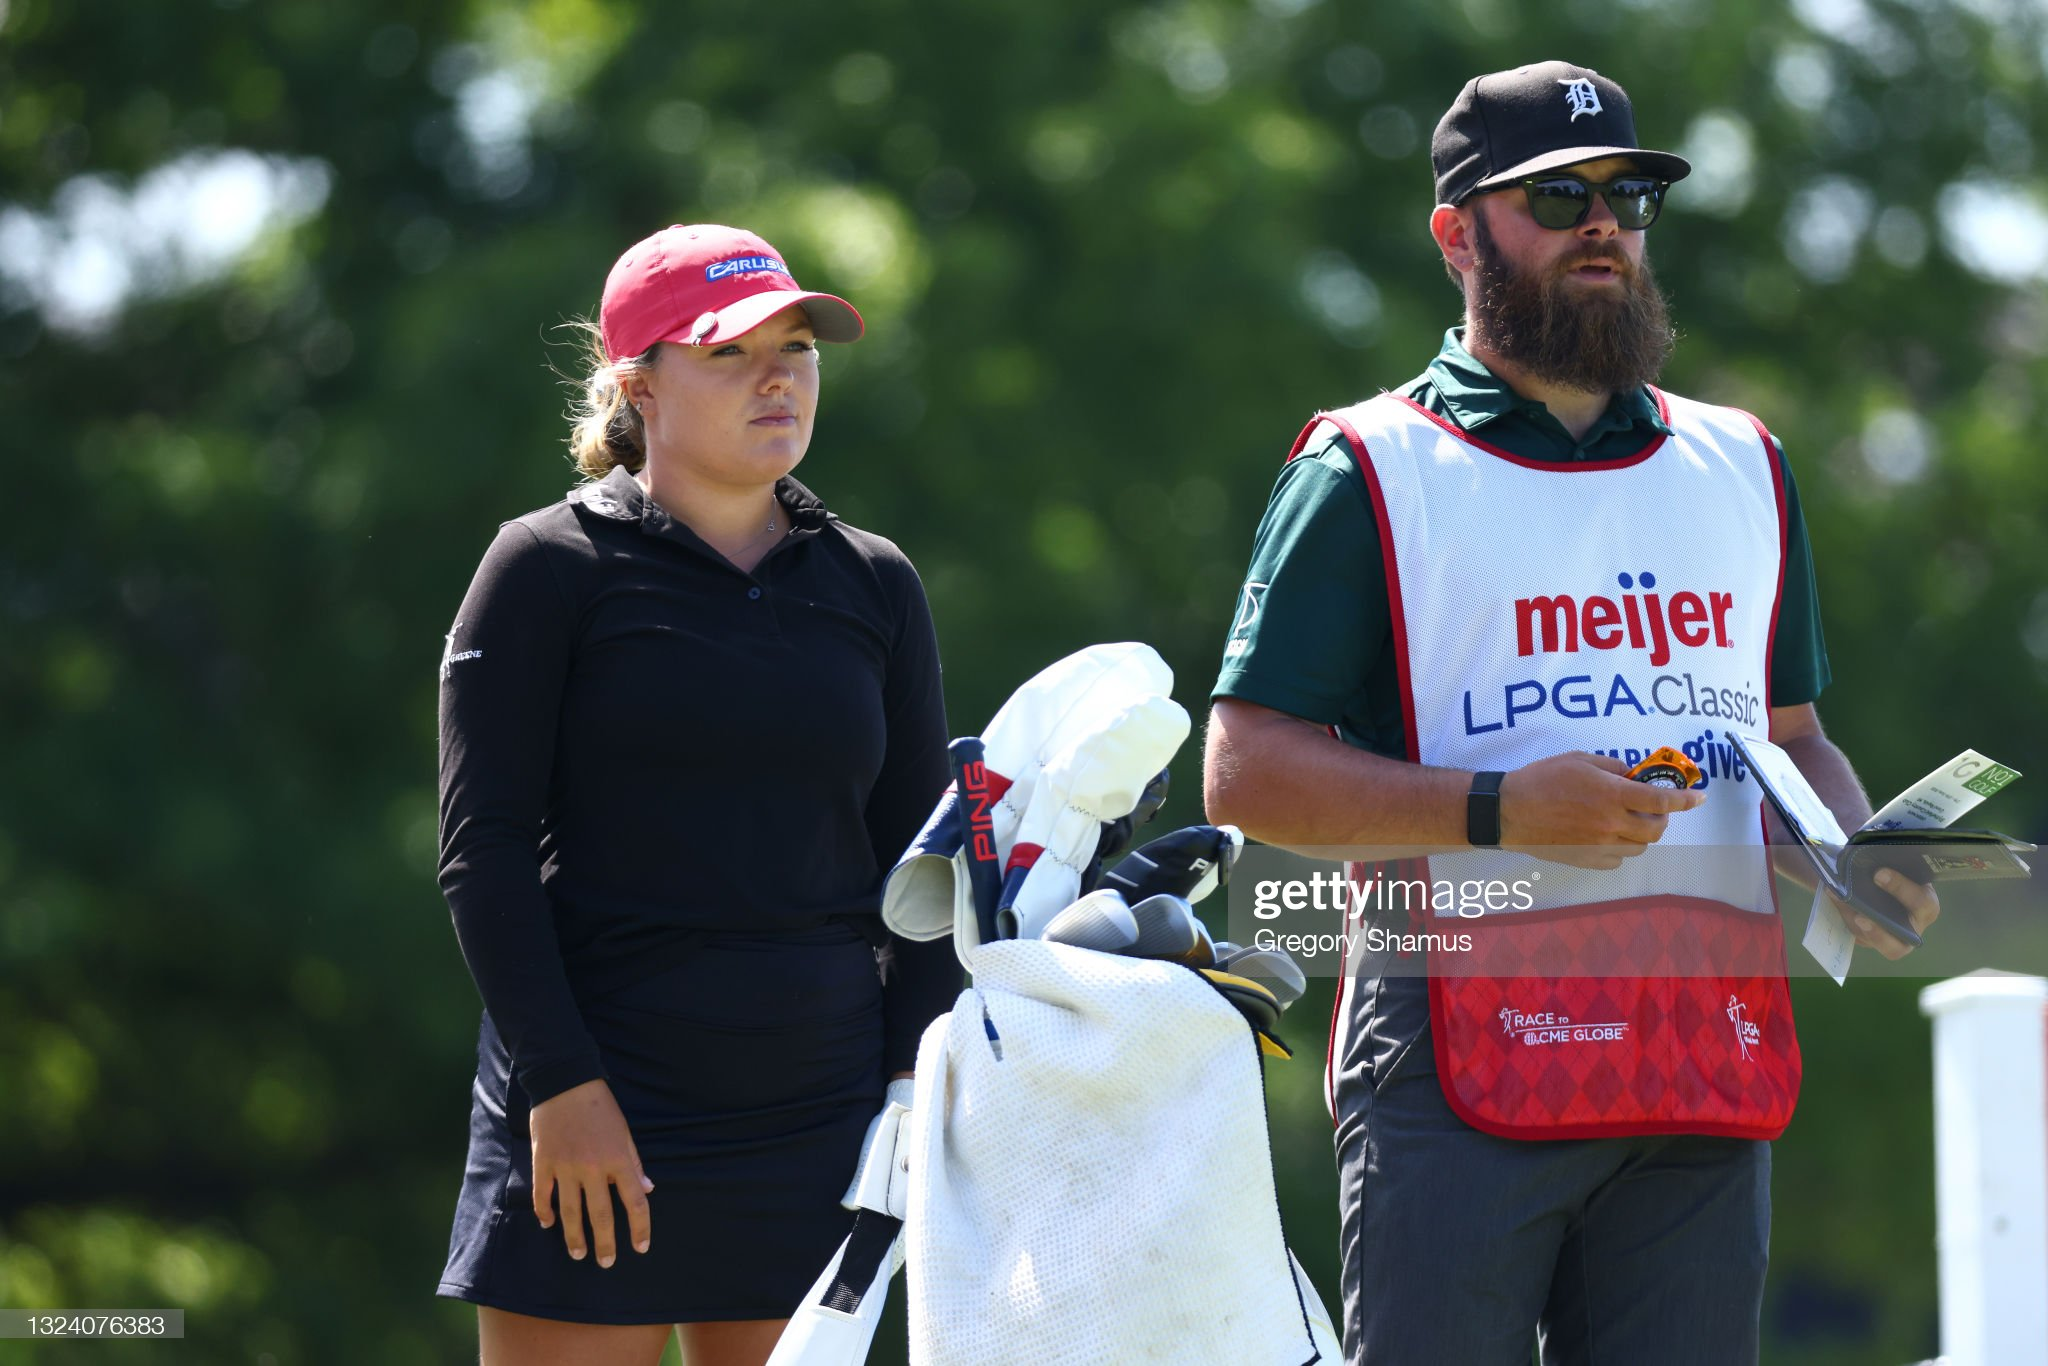 https://media.gettyimages.com/photos/lauren-stephenson-and-her-caddie-wait-on-the-fifth-hole-during-round-picture-id1324076383?s=2048x2048